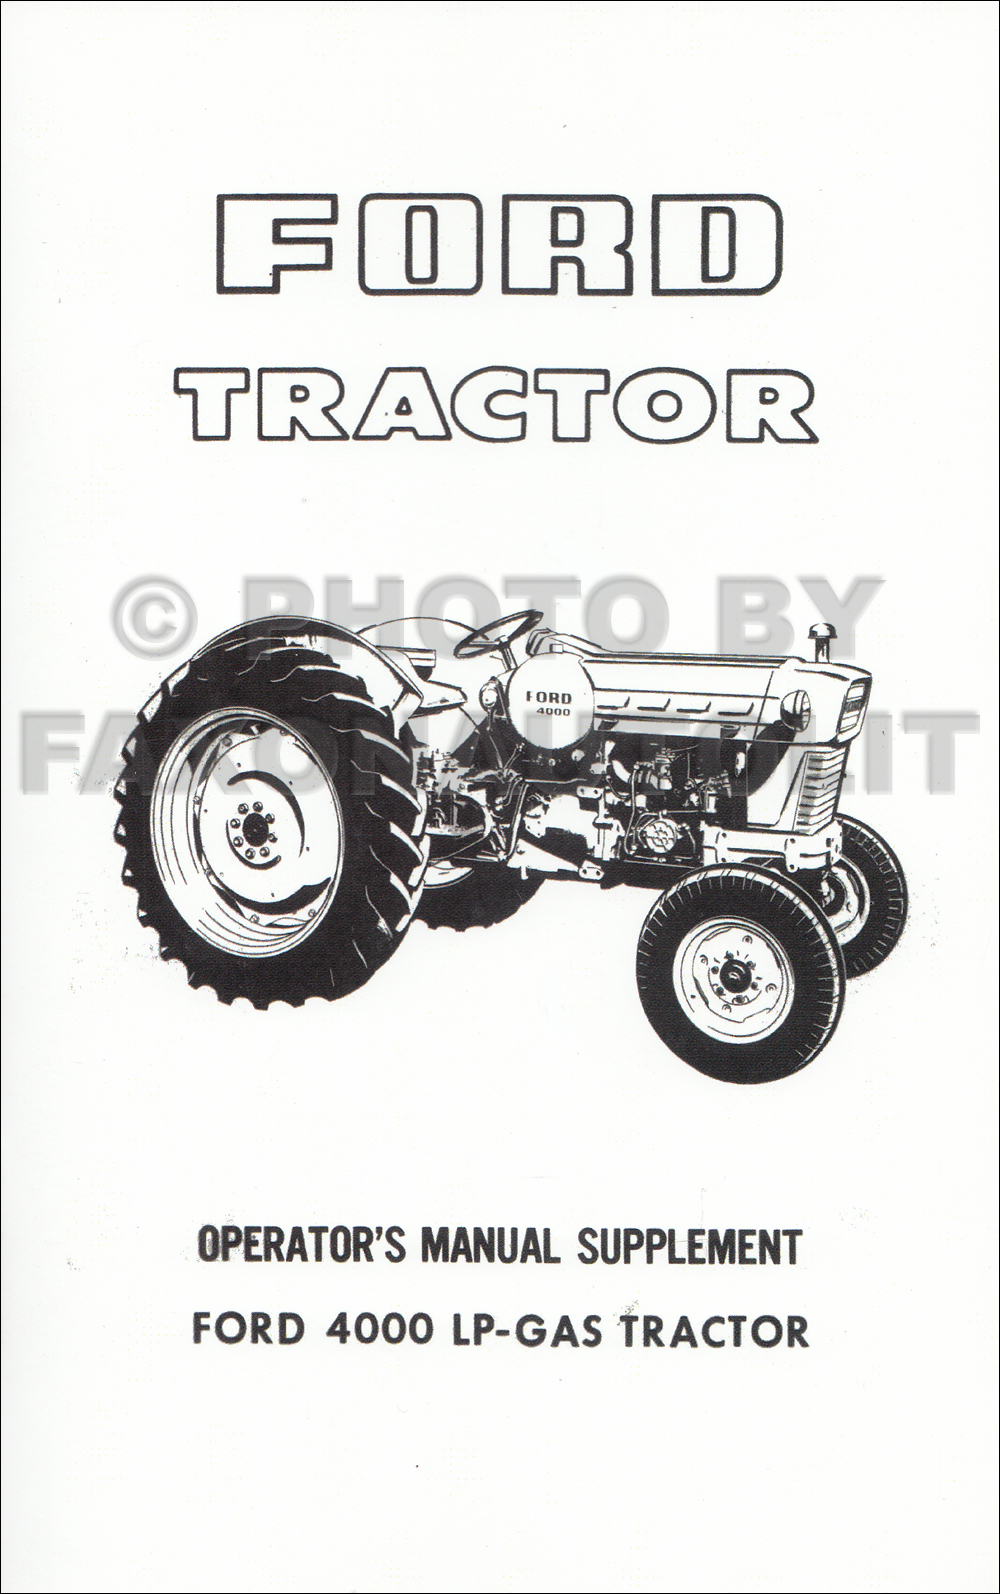 1965 1967 ford tractor owners manual reprint 2000 2110 3000 4000 rh faxonautoliterature com ford 3000 tractor manual download ford 3000 tractor manual free